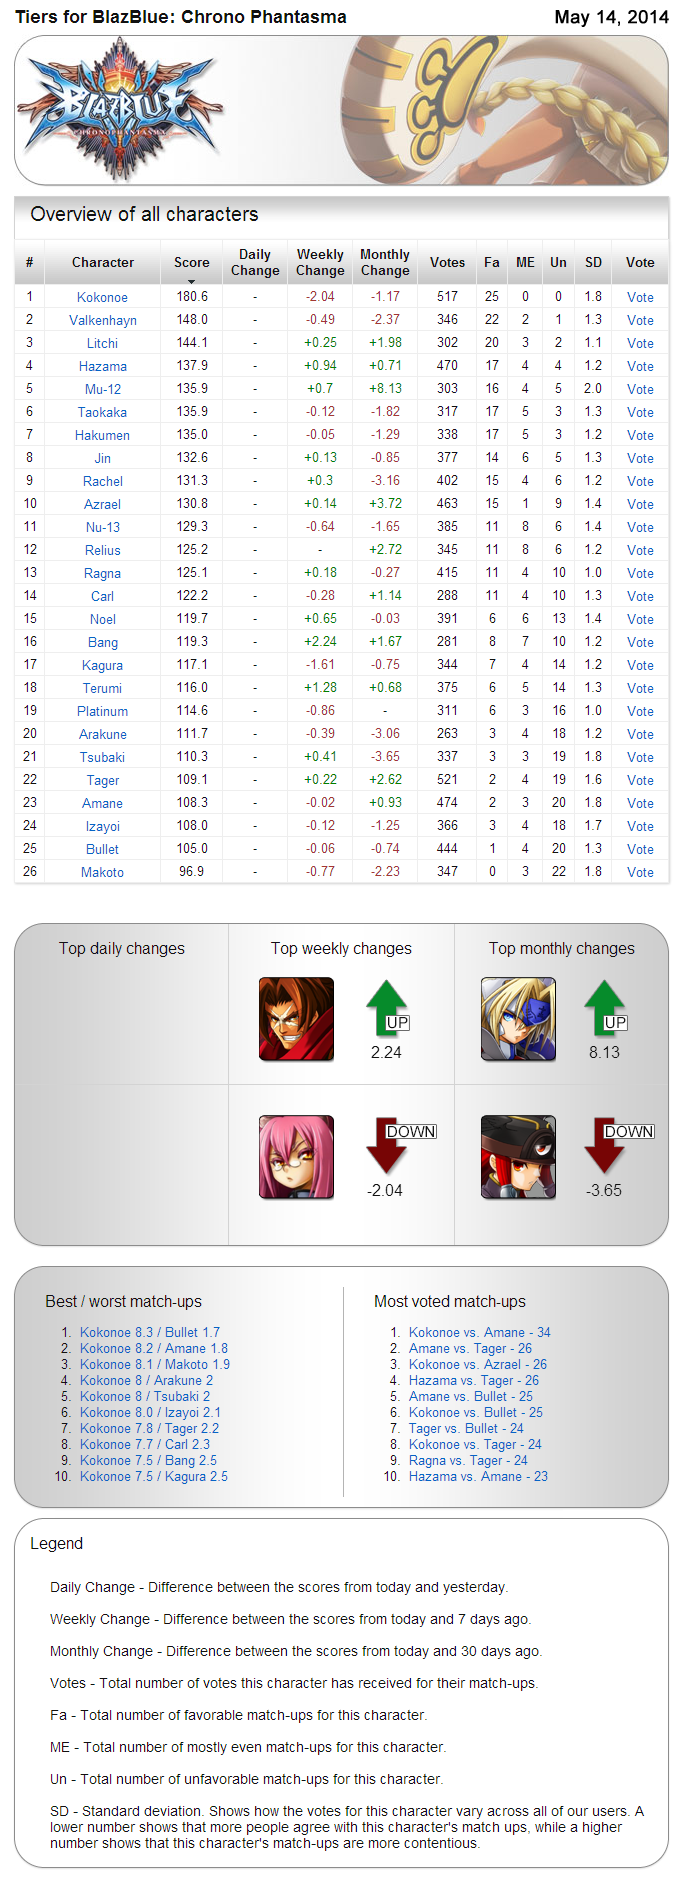 Archived tiers for BlazBlue: Chrono Phantasma - Tiers Screenshot -May 14th, 2014